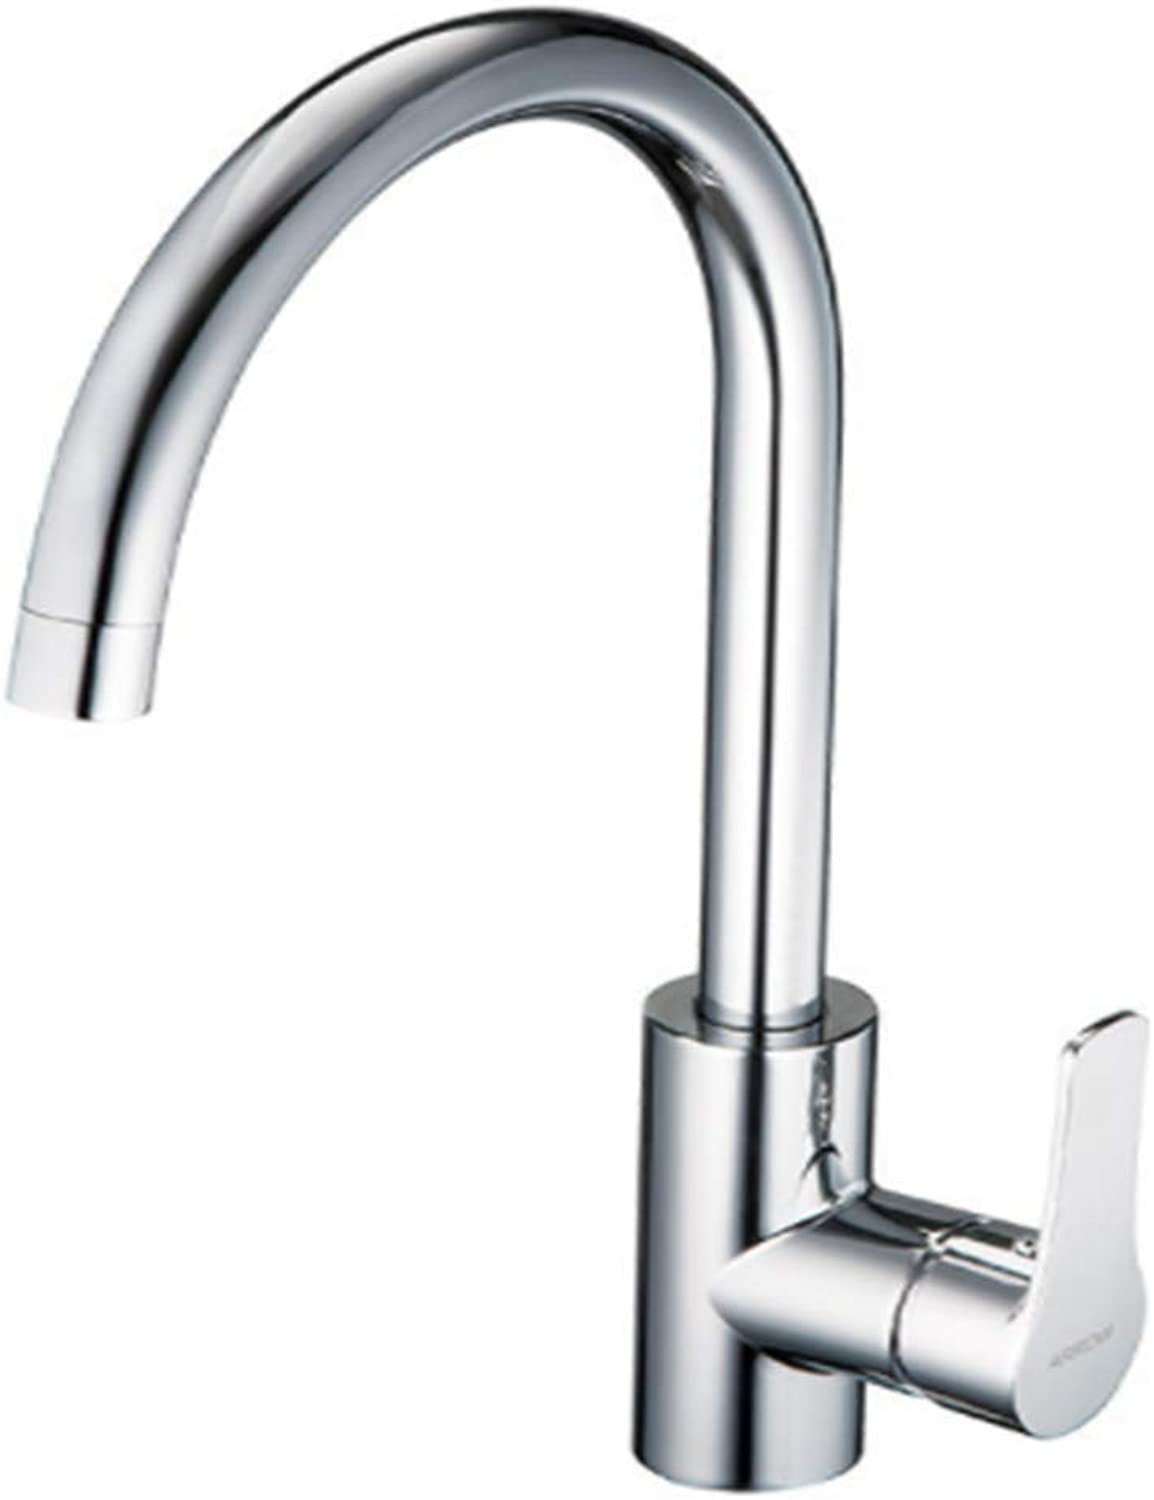 Kitchen Taps Faucet Modern Kitchen Sink Taps Stainless Steelbathroom Faucet Kitchen Faucet Hot and Cold Kitchen Dish Pot Faucet Ceramic Disc Spool